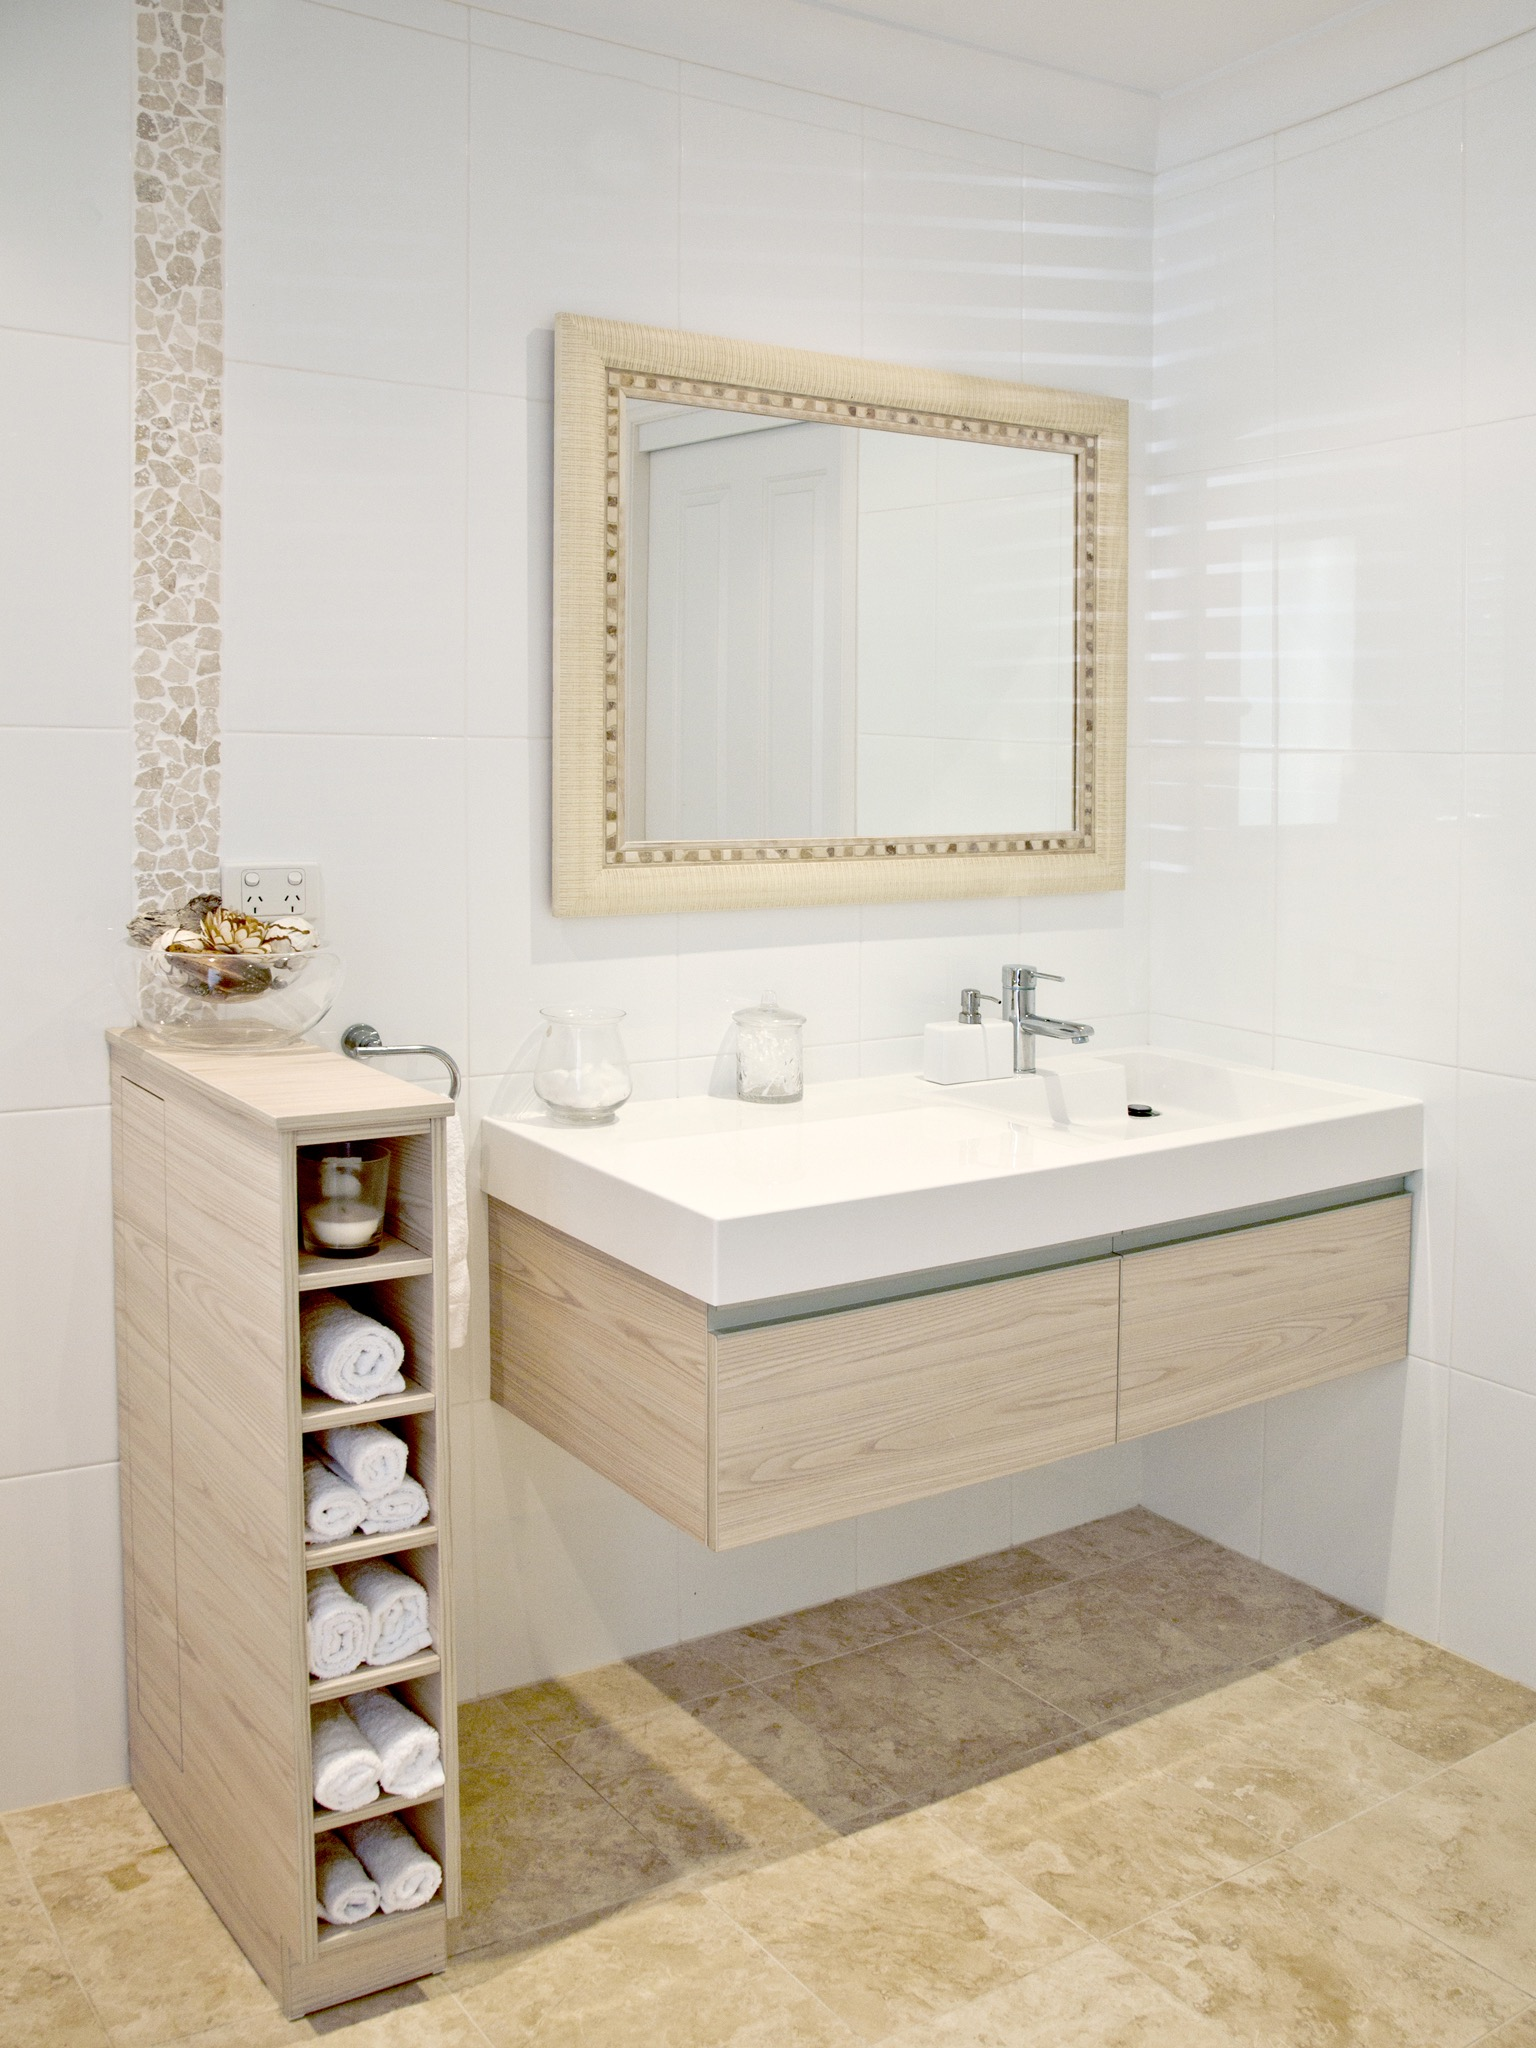 2017 Chic Contemporary Small Bathroom (View 2 of 14)